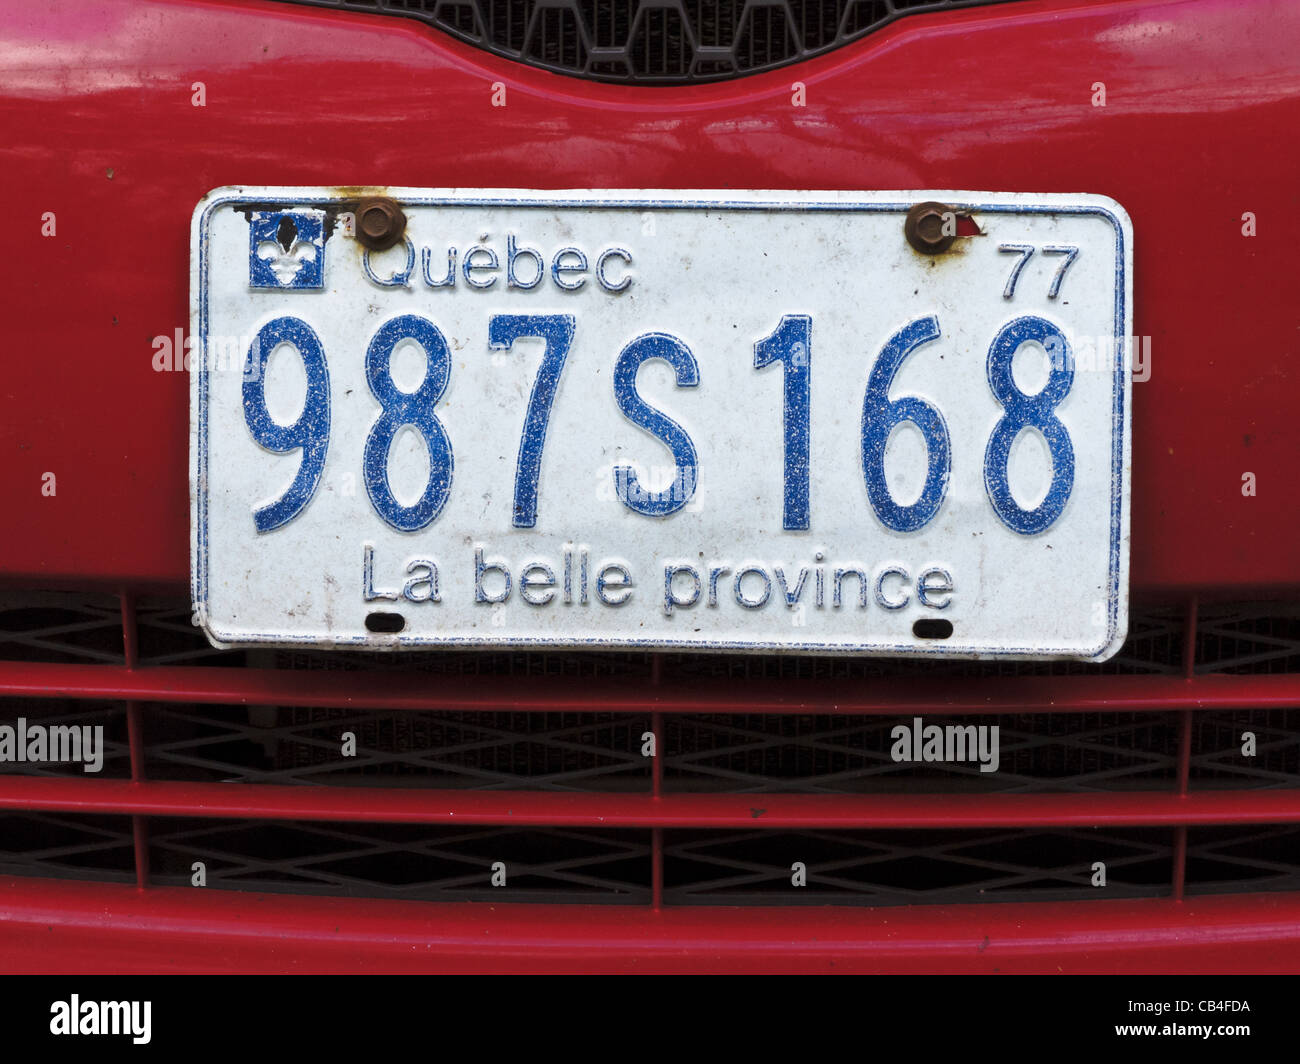 1977 Quebec license plate with slogan 'La belle province' (the beautiful province). - Stock Image